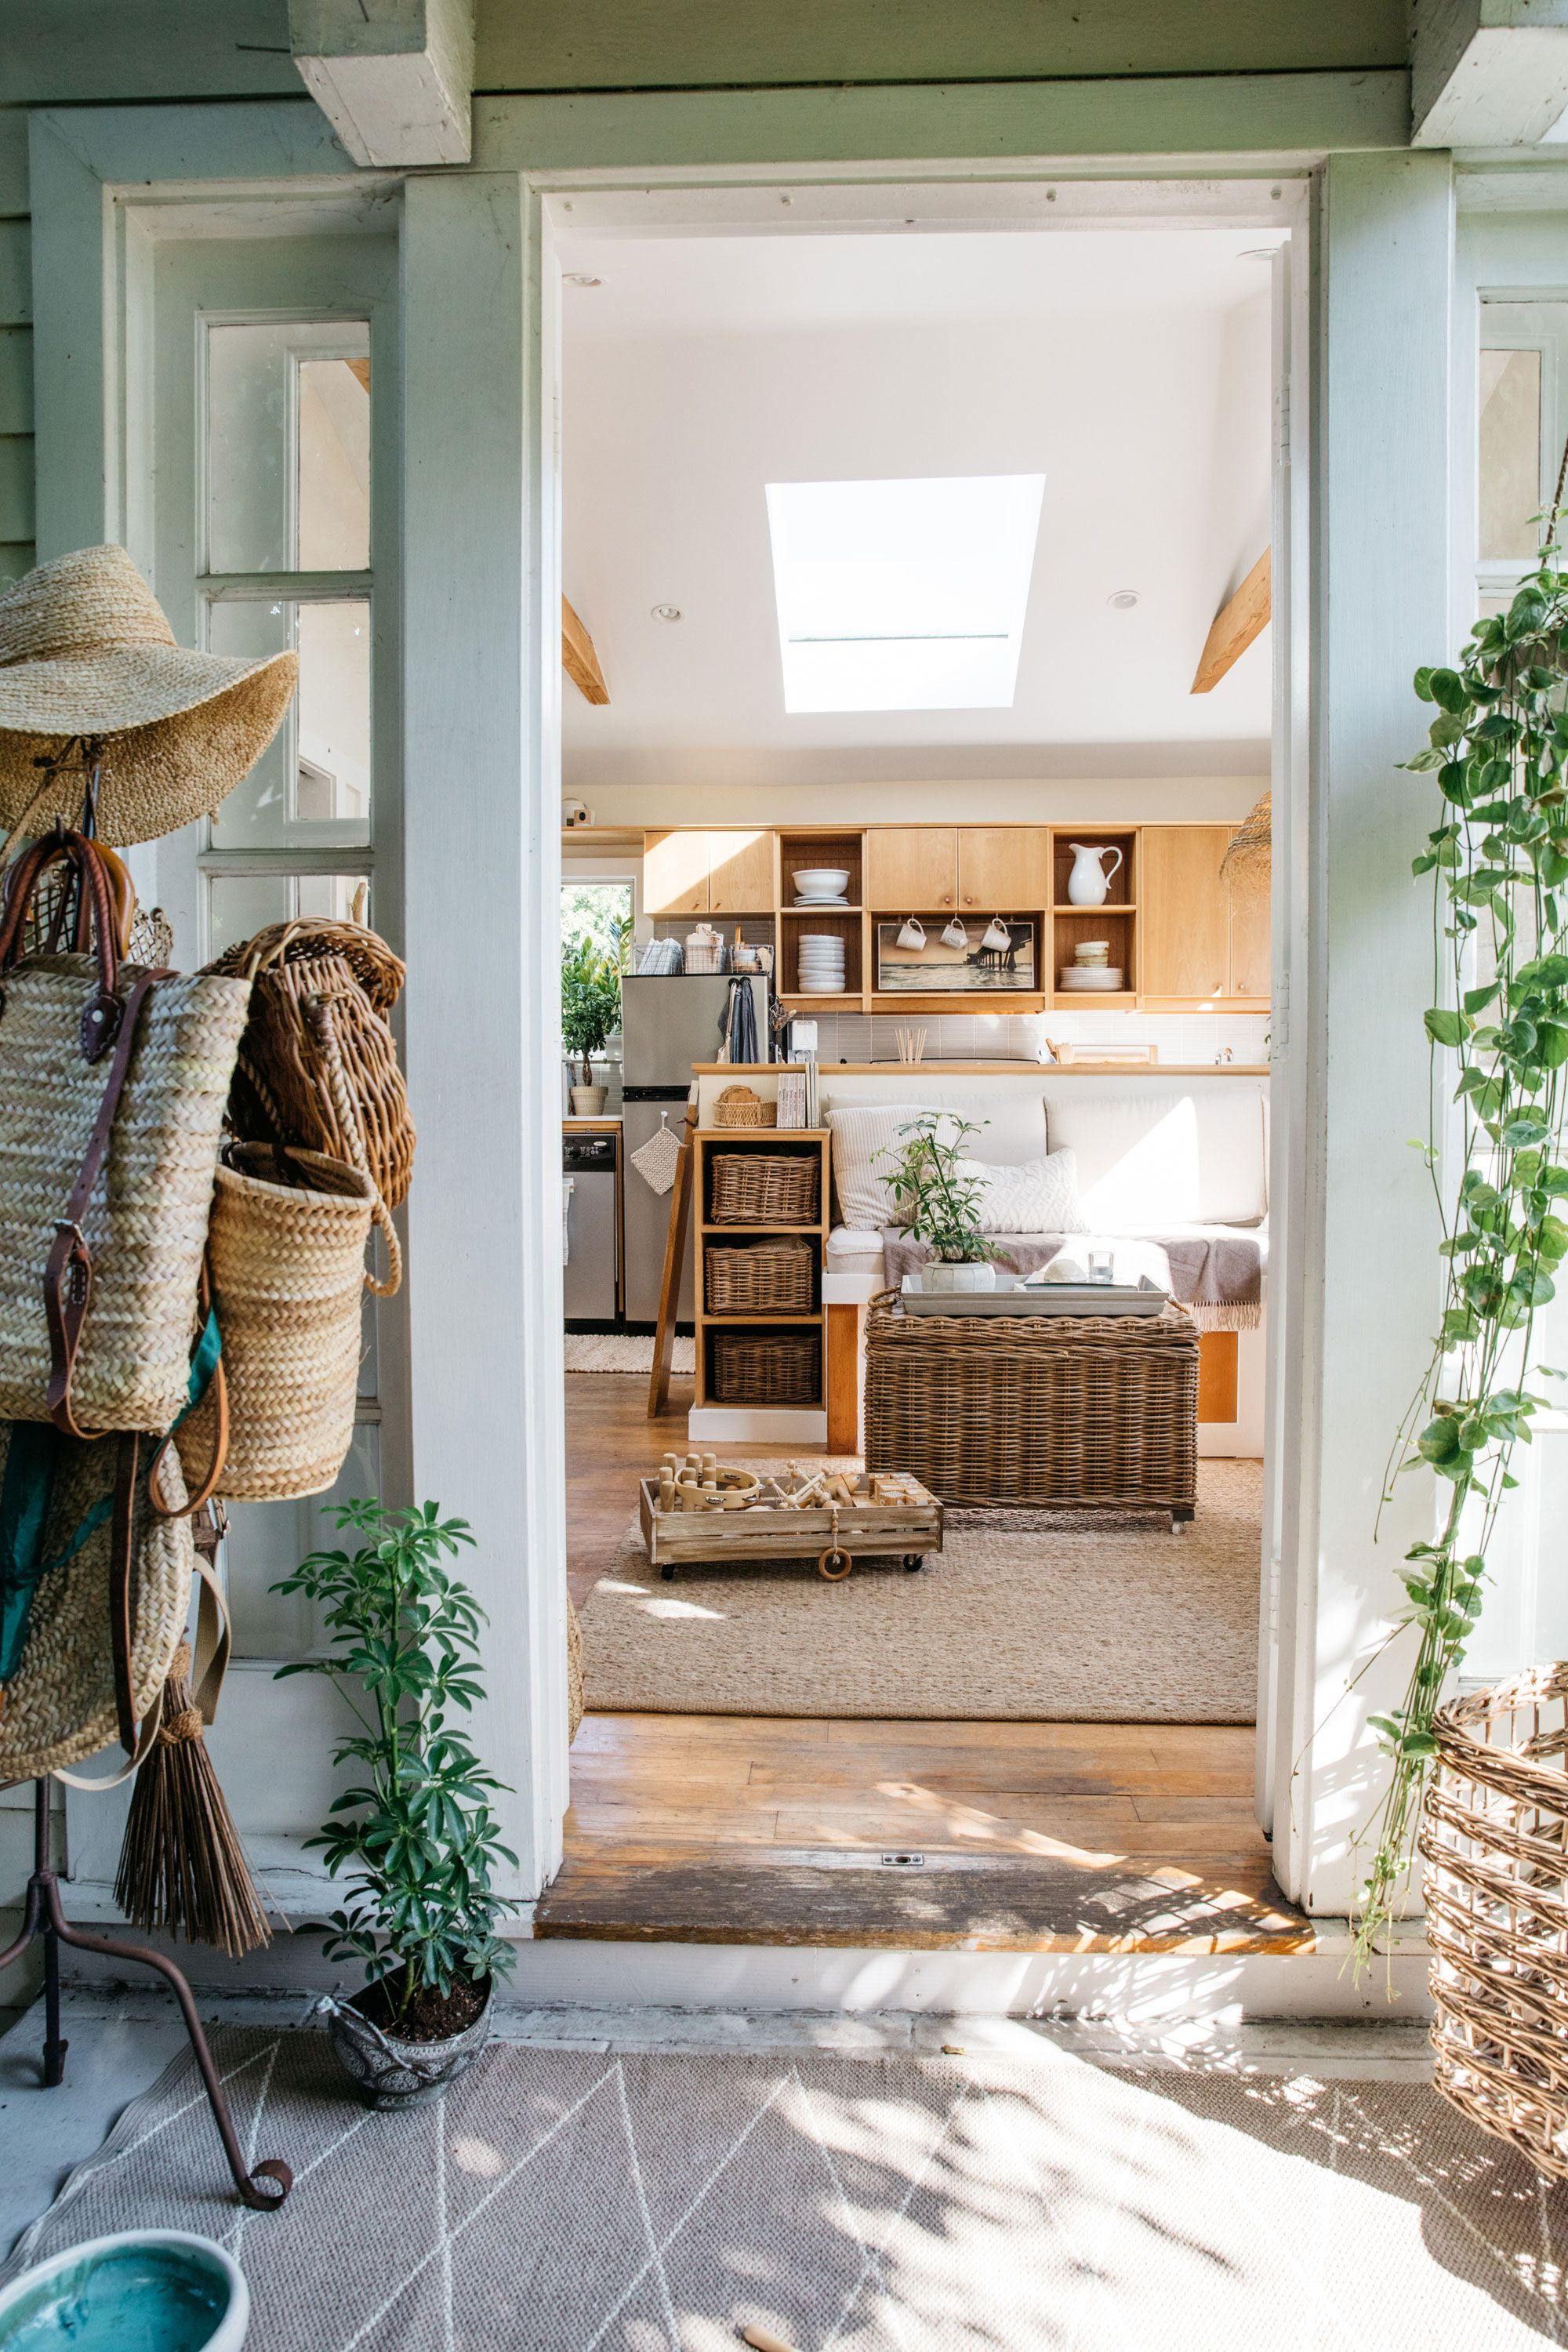 Image. The Tiny Canal Cottage Is Full Of Wicker Baskets U2014 A Great Storage  Solution, Which Also Blends Into The Wood And White Design Aesthetic.